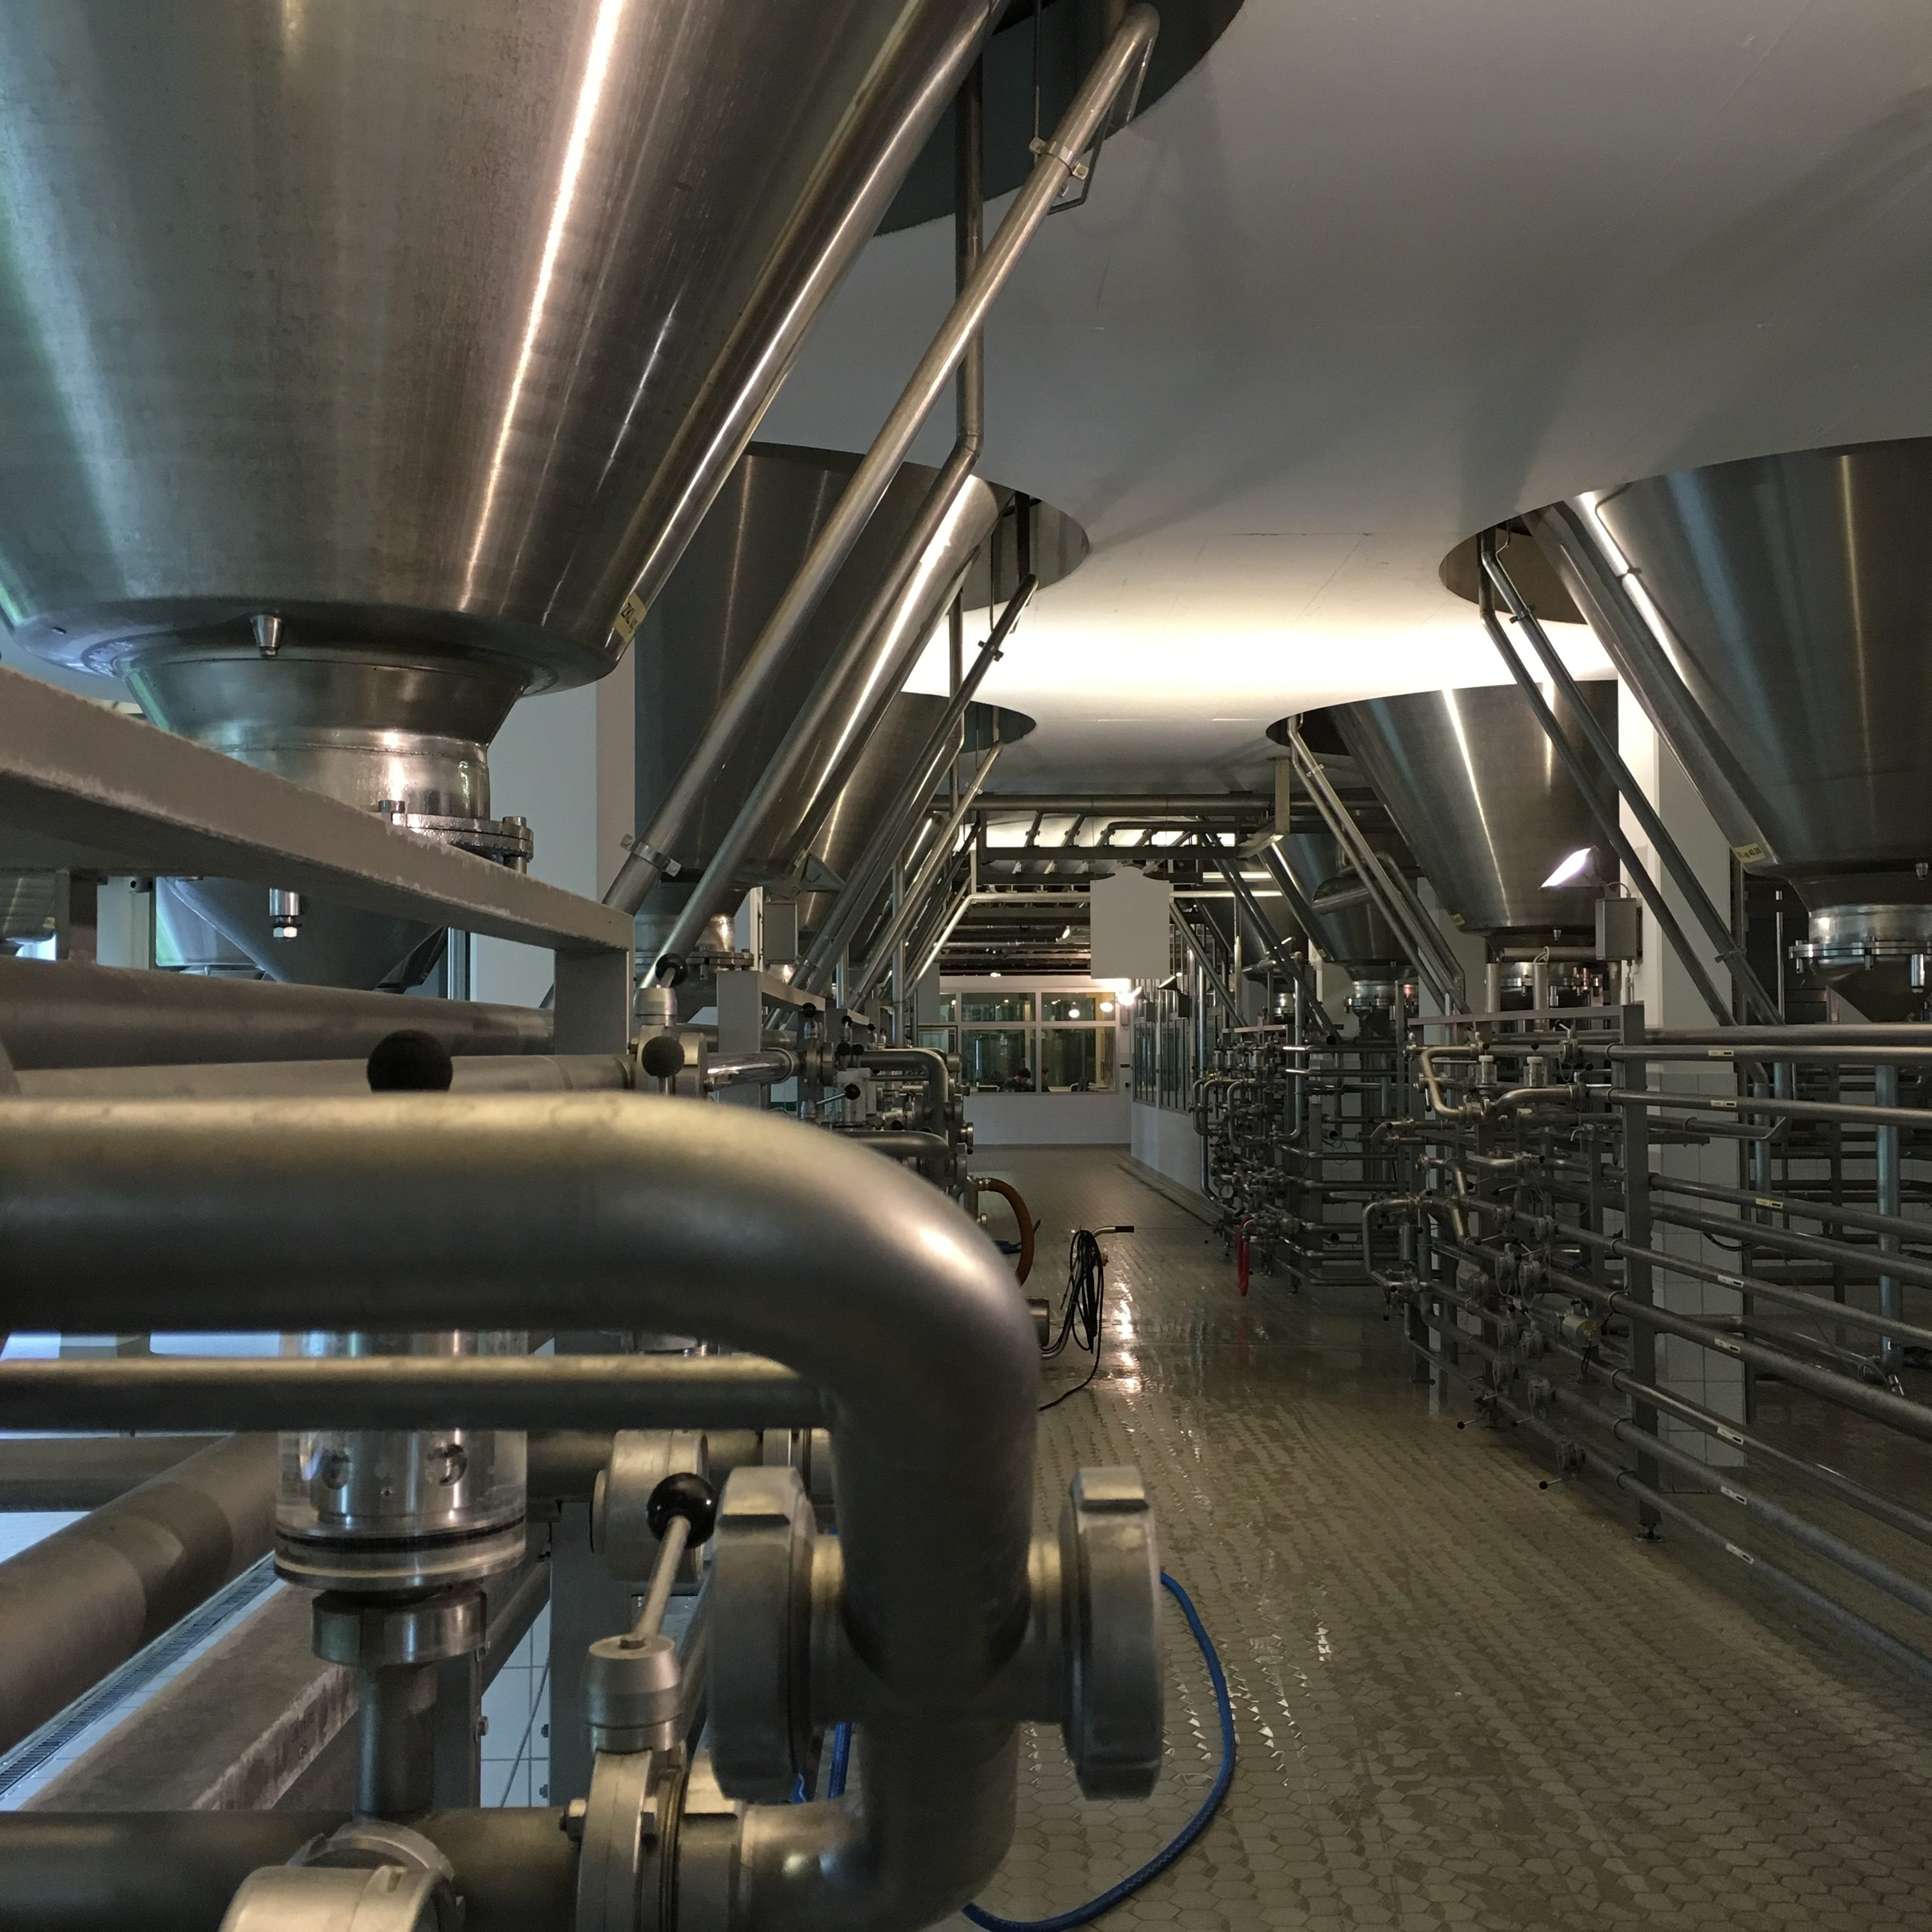 The bottom of tanks during the Ayinger Brewery tour.